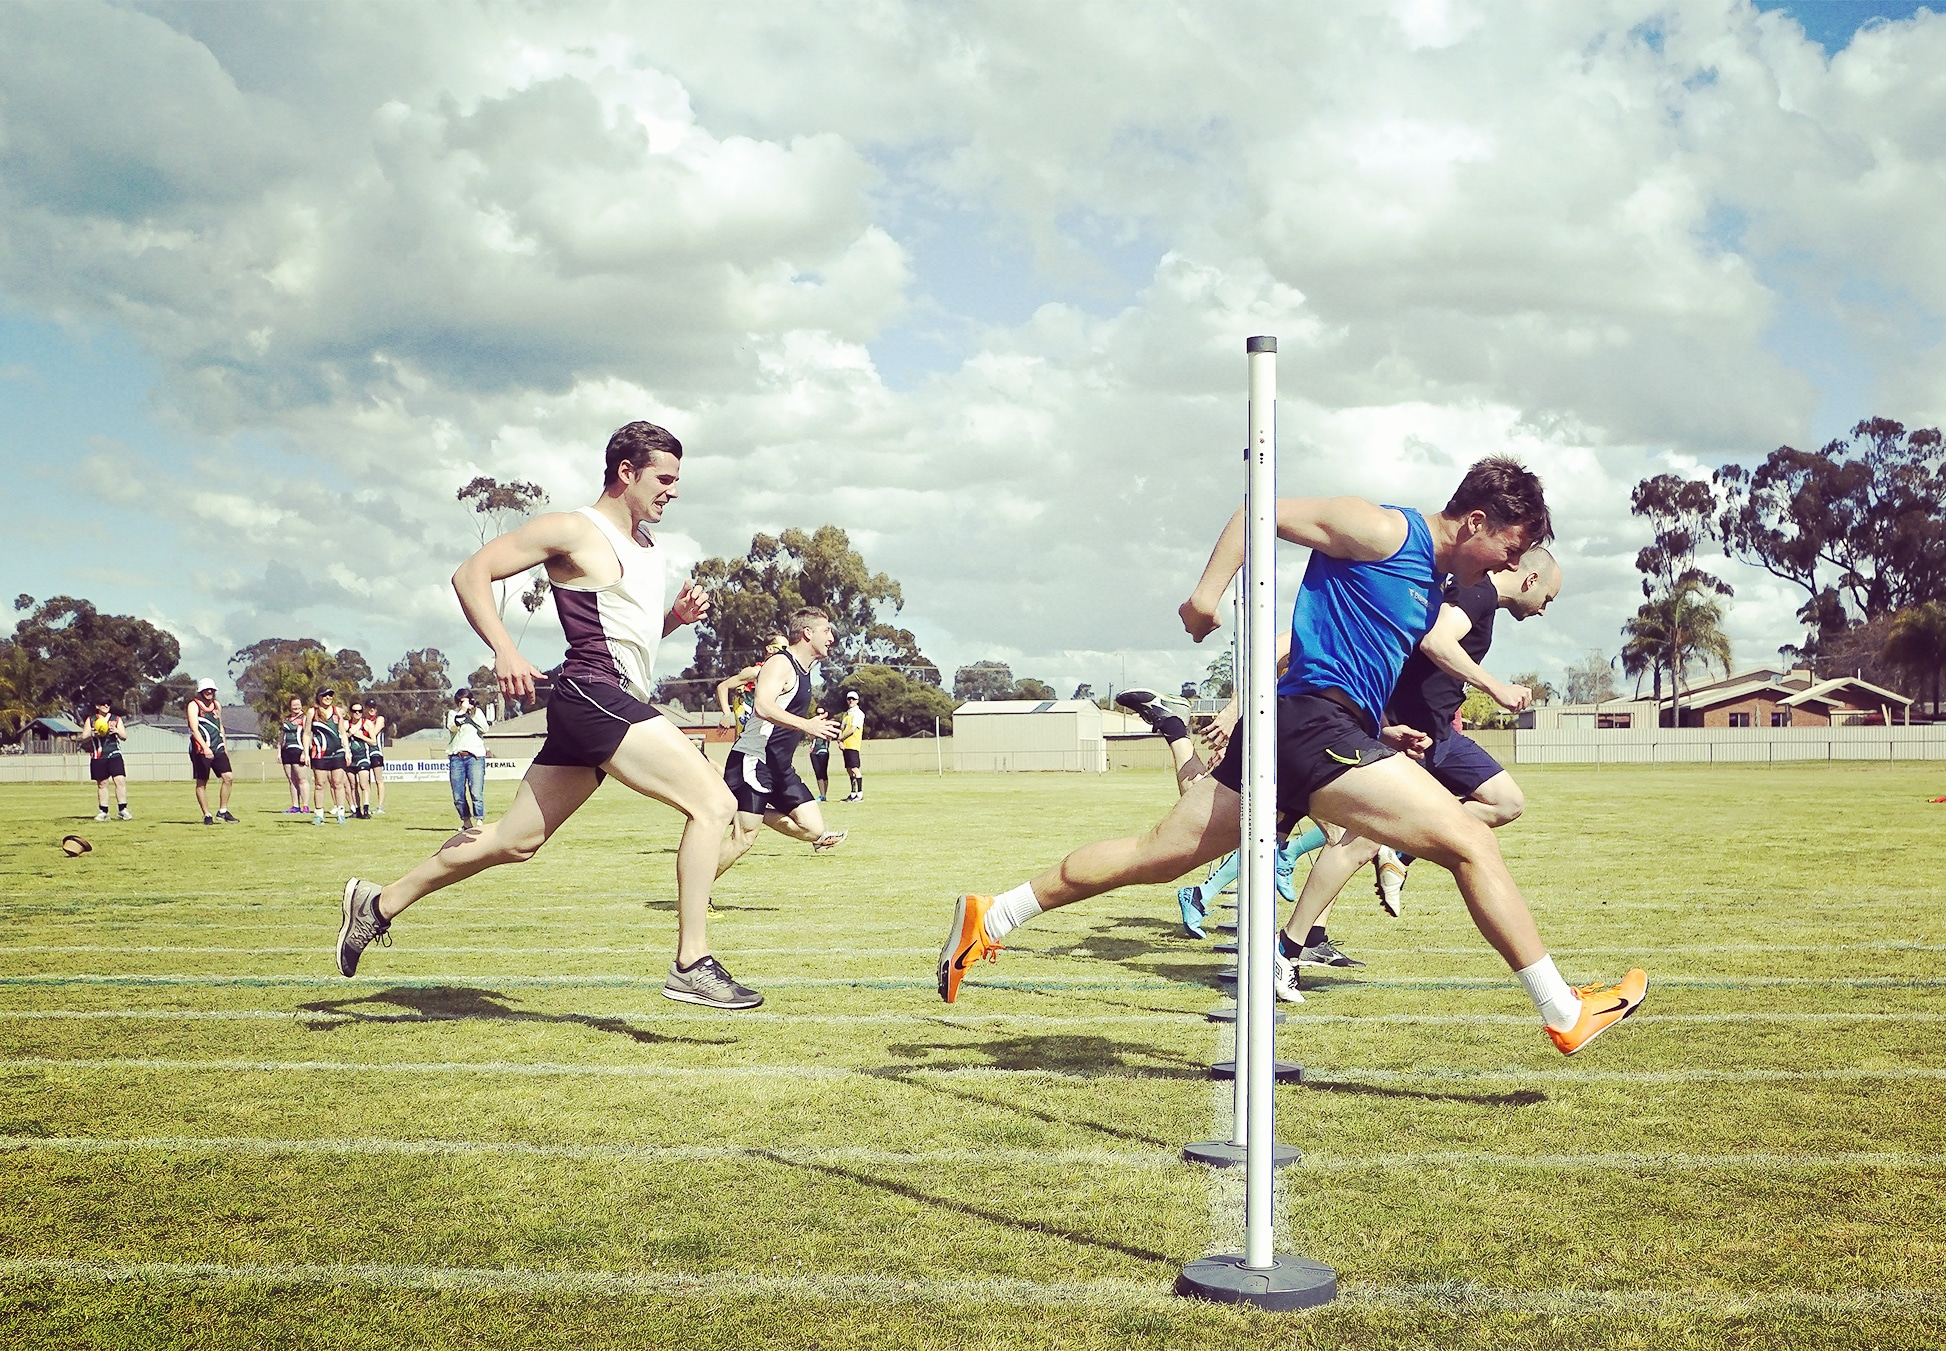 How to do Sports Photography Sprint Race Finish